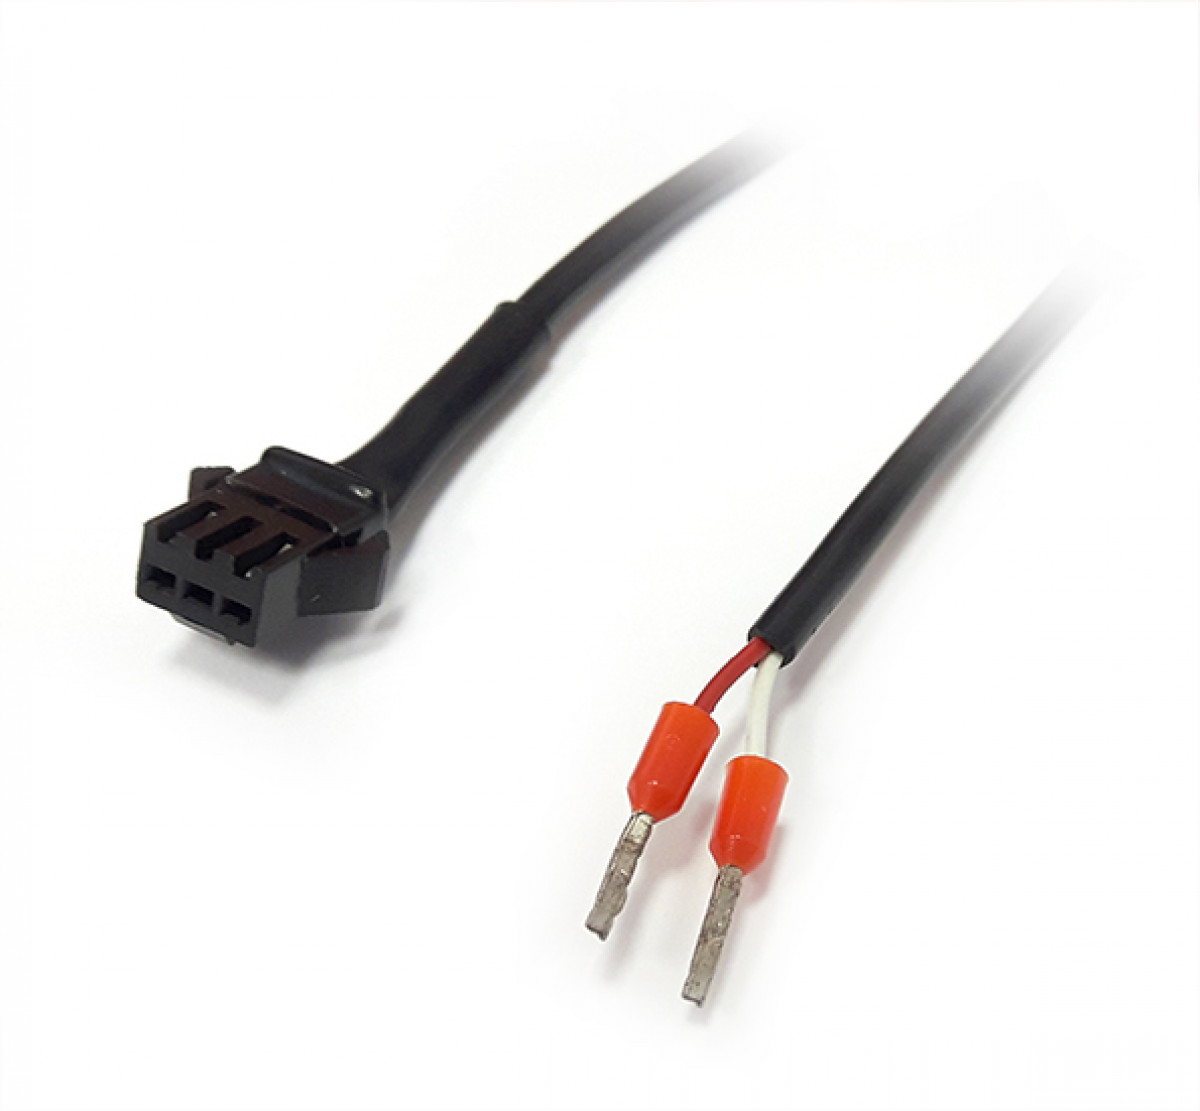 Power cable, side 1 SM 2 PIN male connector side 2 flying leads - 3 m